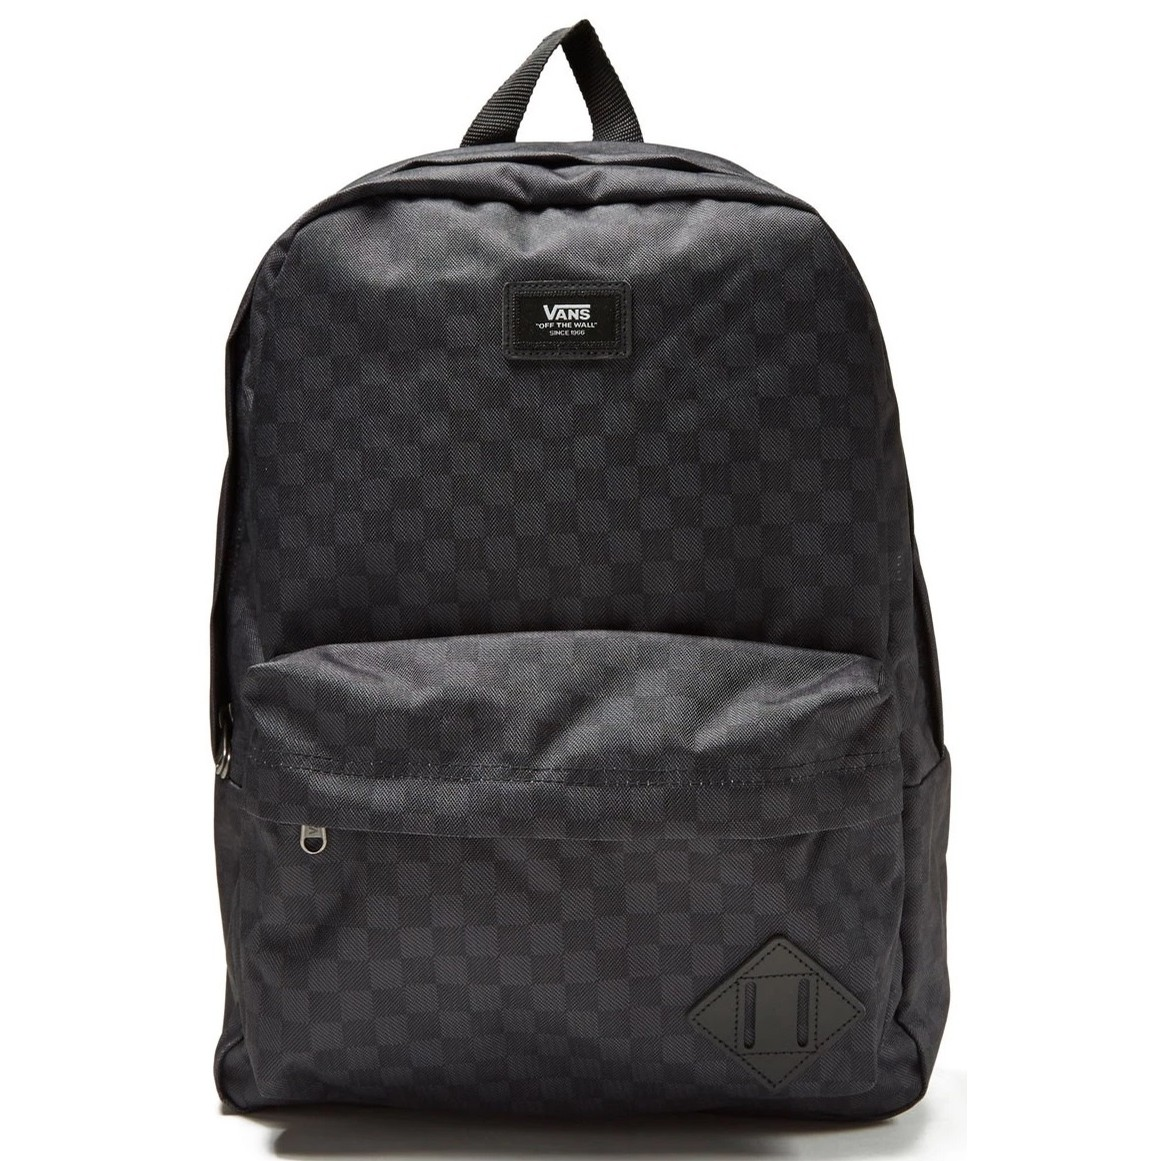 Old Skool III Backpack (Black/Charcoal)